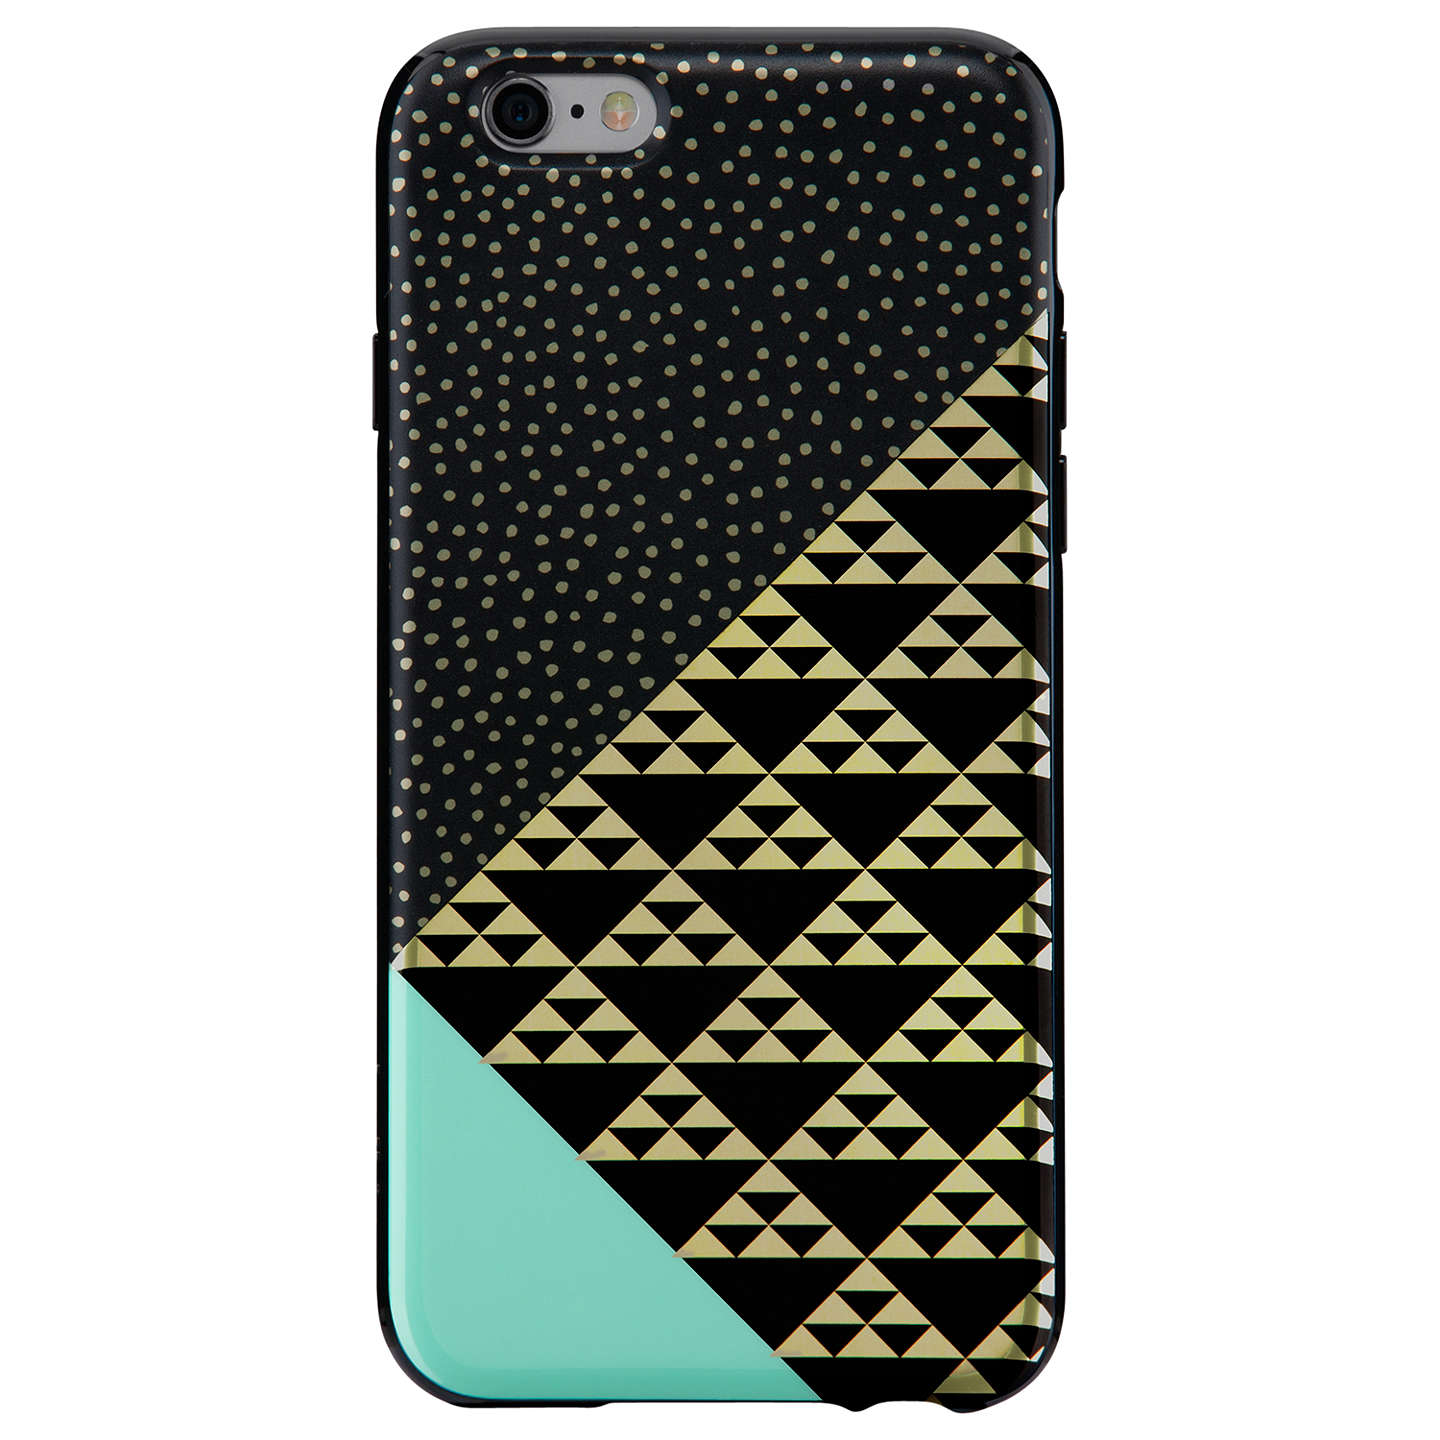 BuyBelkin Geo Dots Print Case for iPhone 6 Online at johnlewis.com